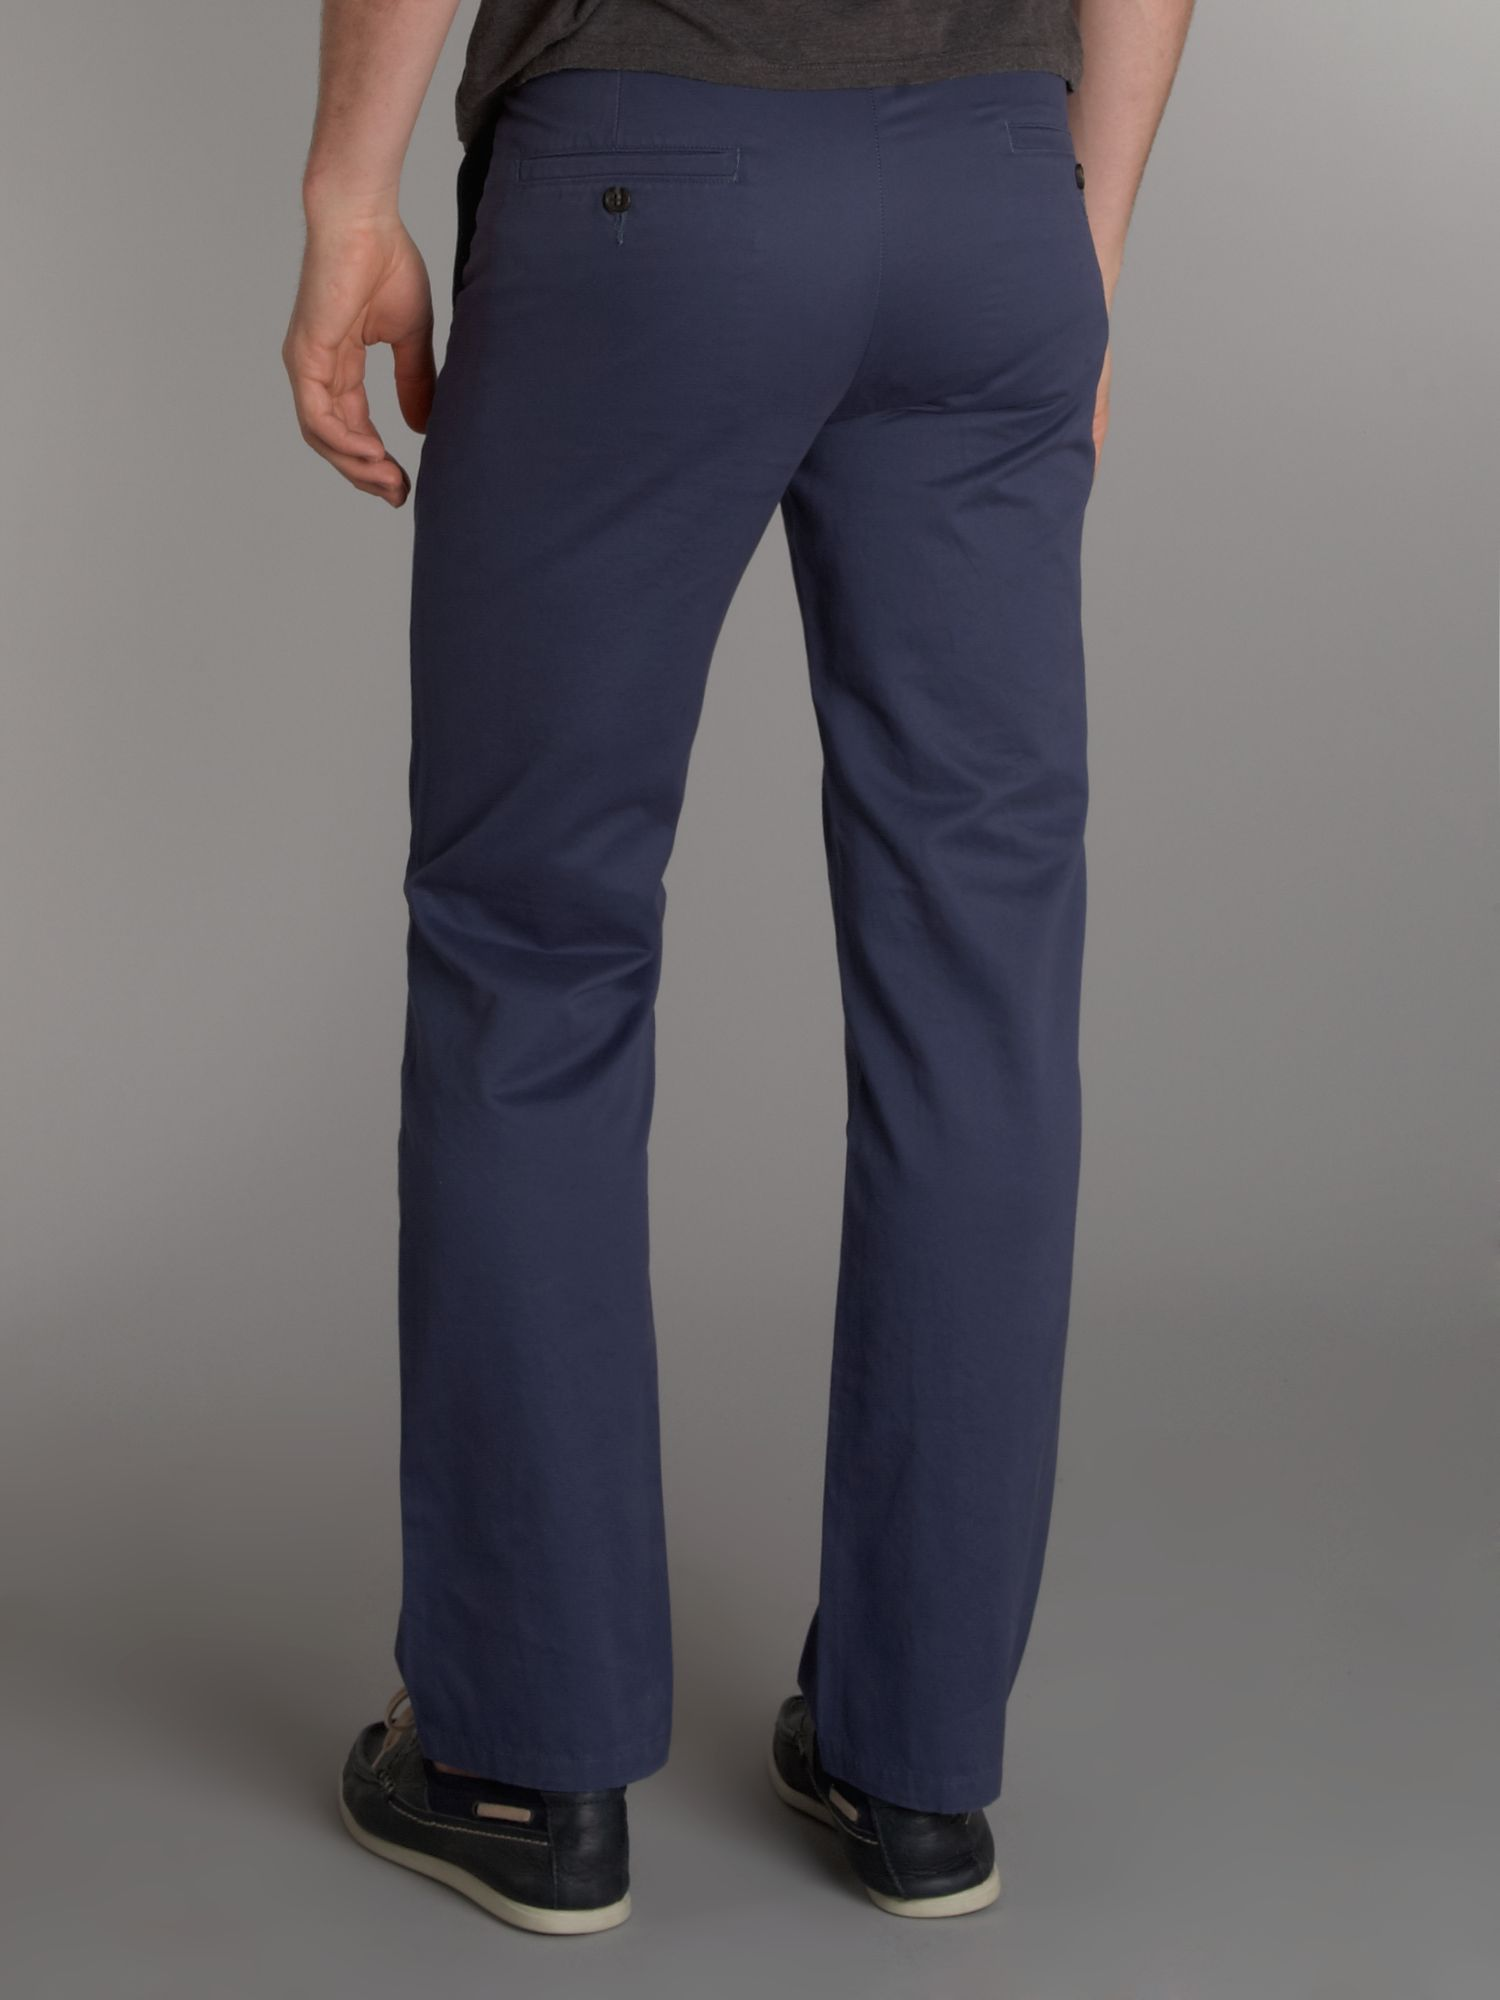 Dockers D1 Colour Straight Fitted Chinos in Slate Blue (Blue) for Men